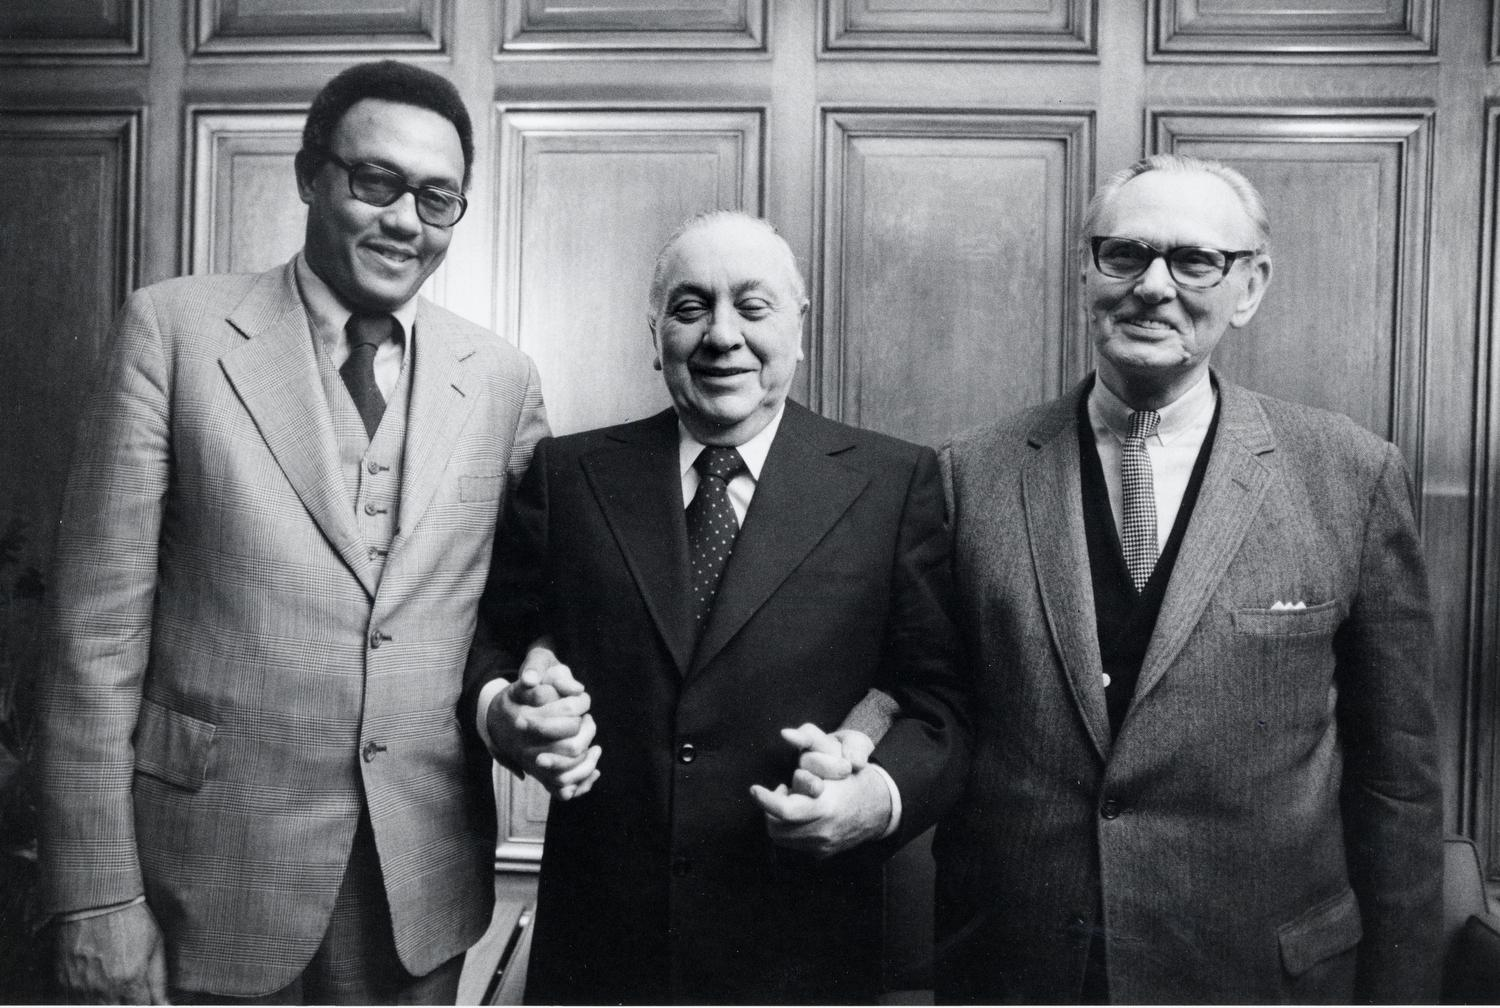 City Treasurer Joseph Bertrand, Mayor Richard J. Daley, and City Clerk John Marcin after election victory.